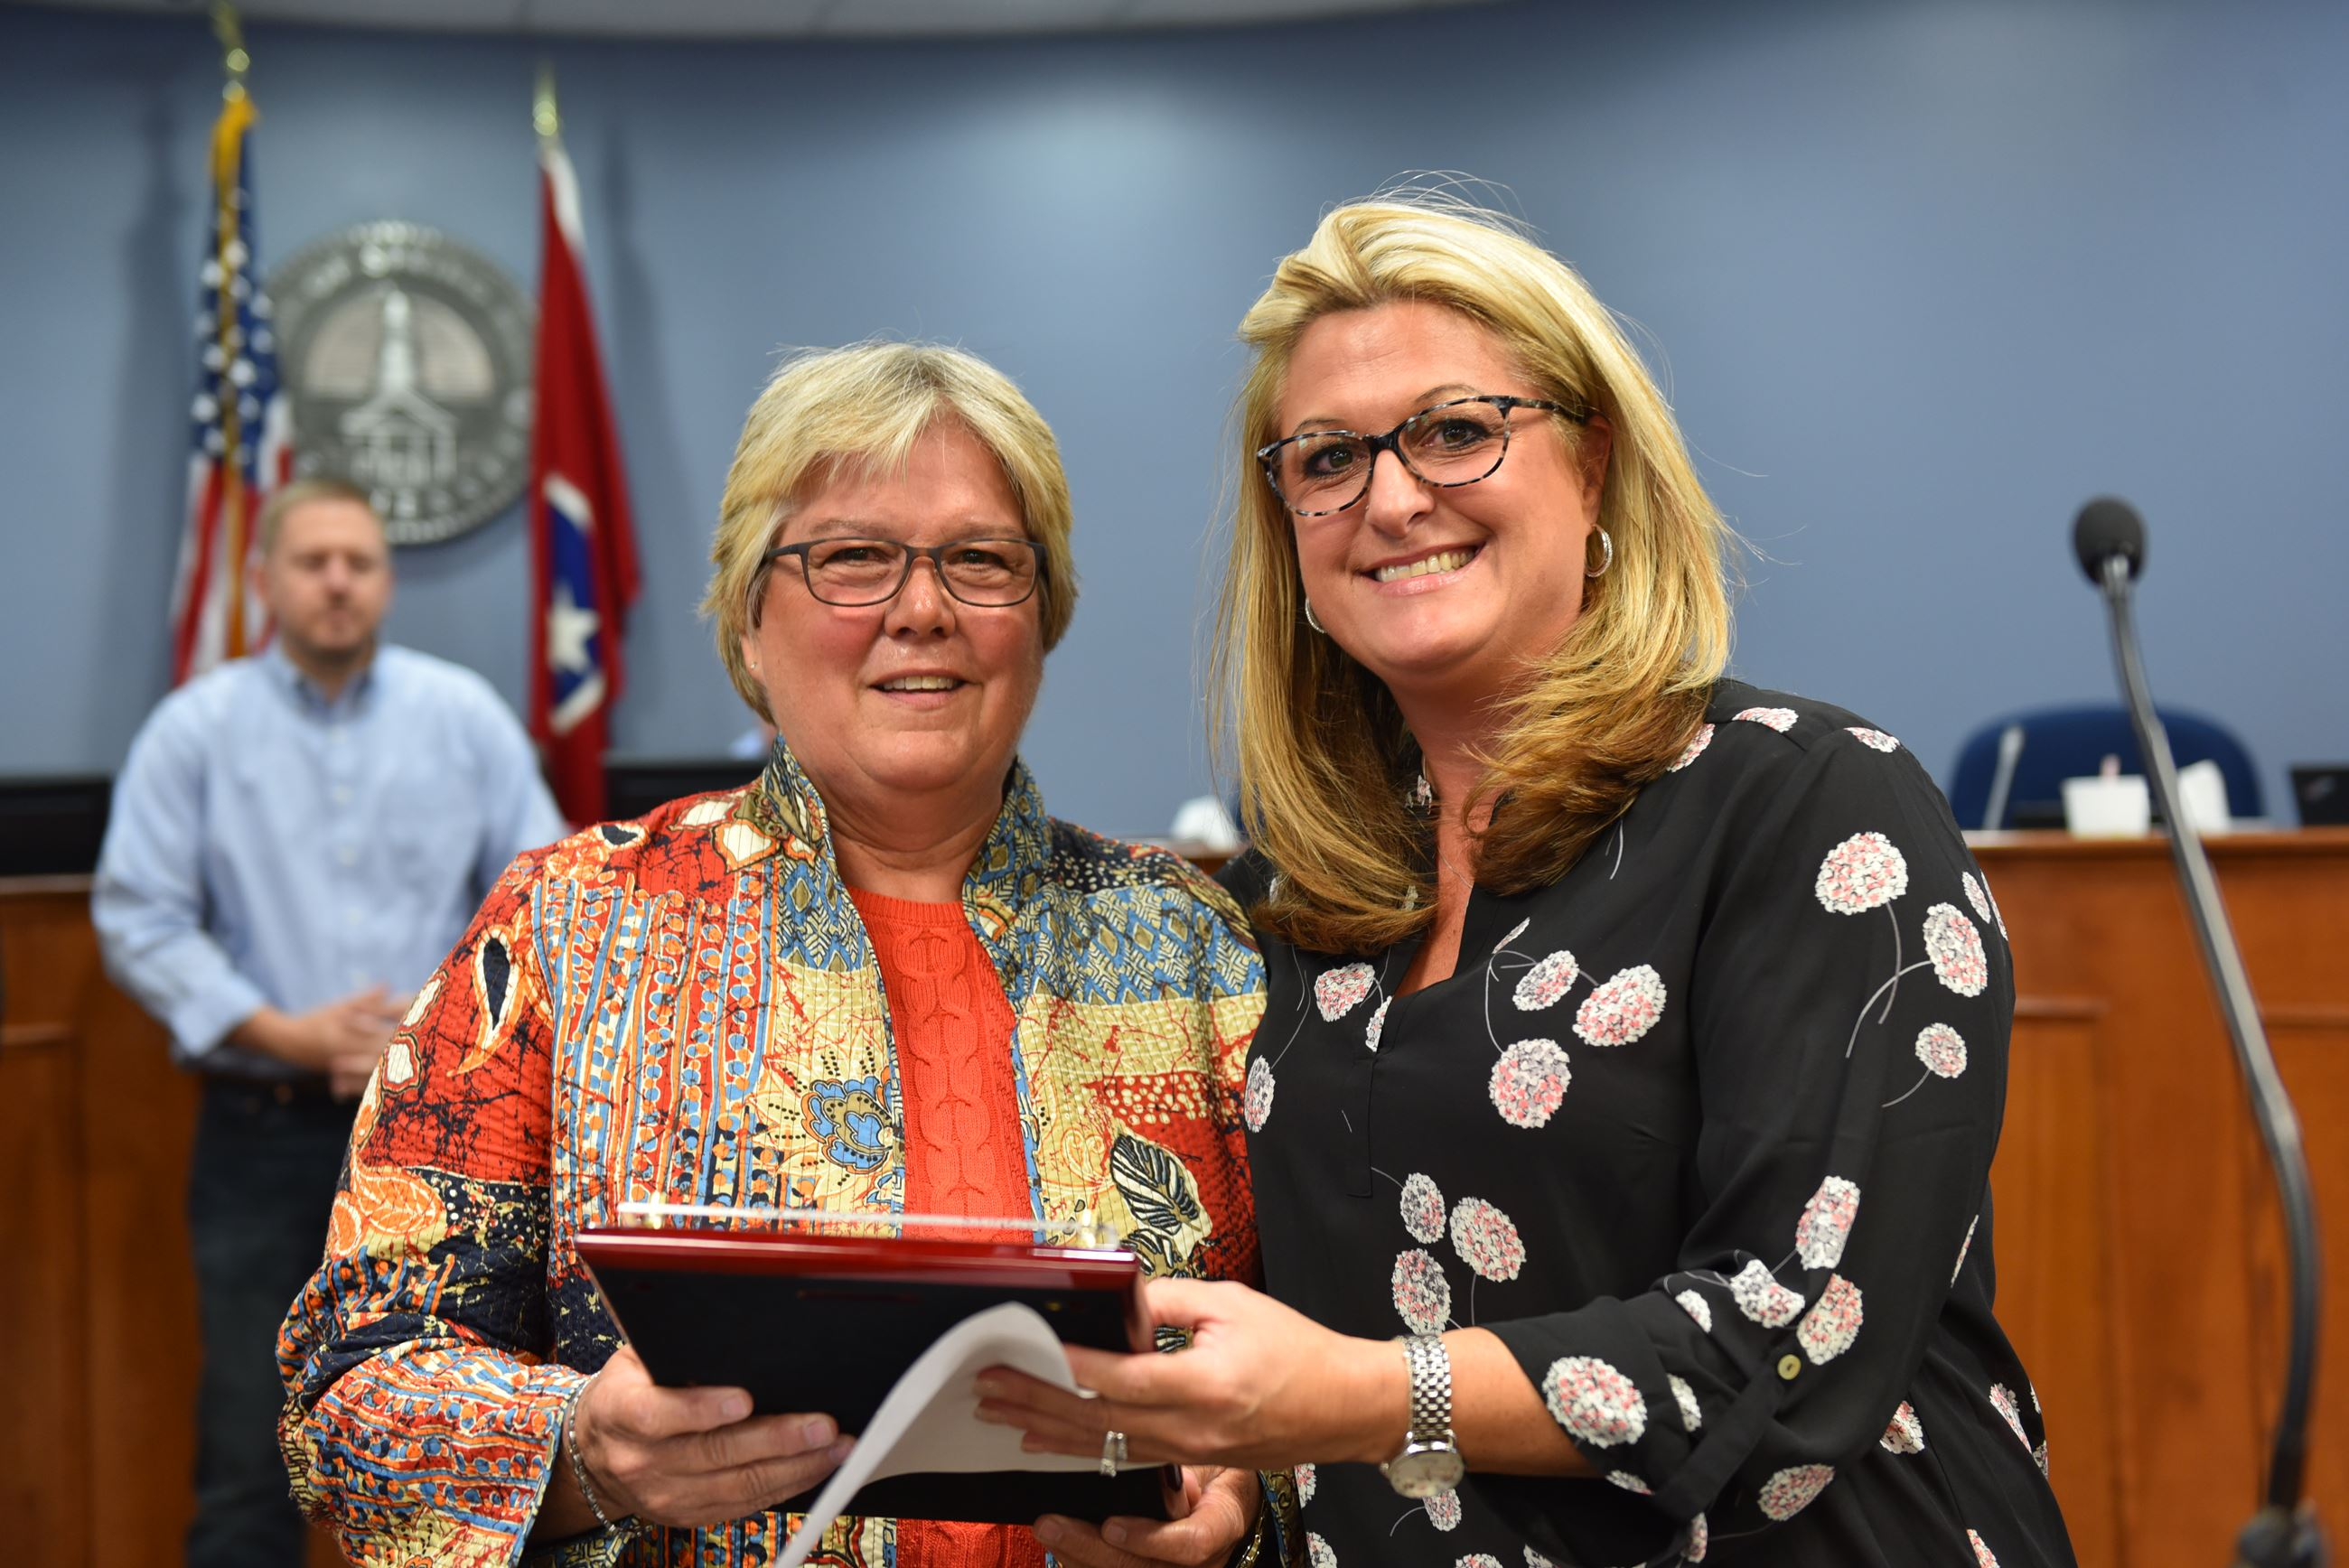 Water Treatment Plant Superintendent Caryl Giles is retiring and was honored by the board with a pla